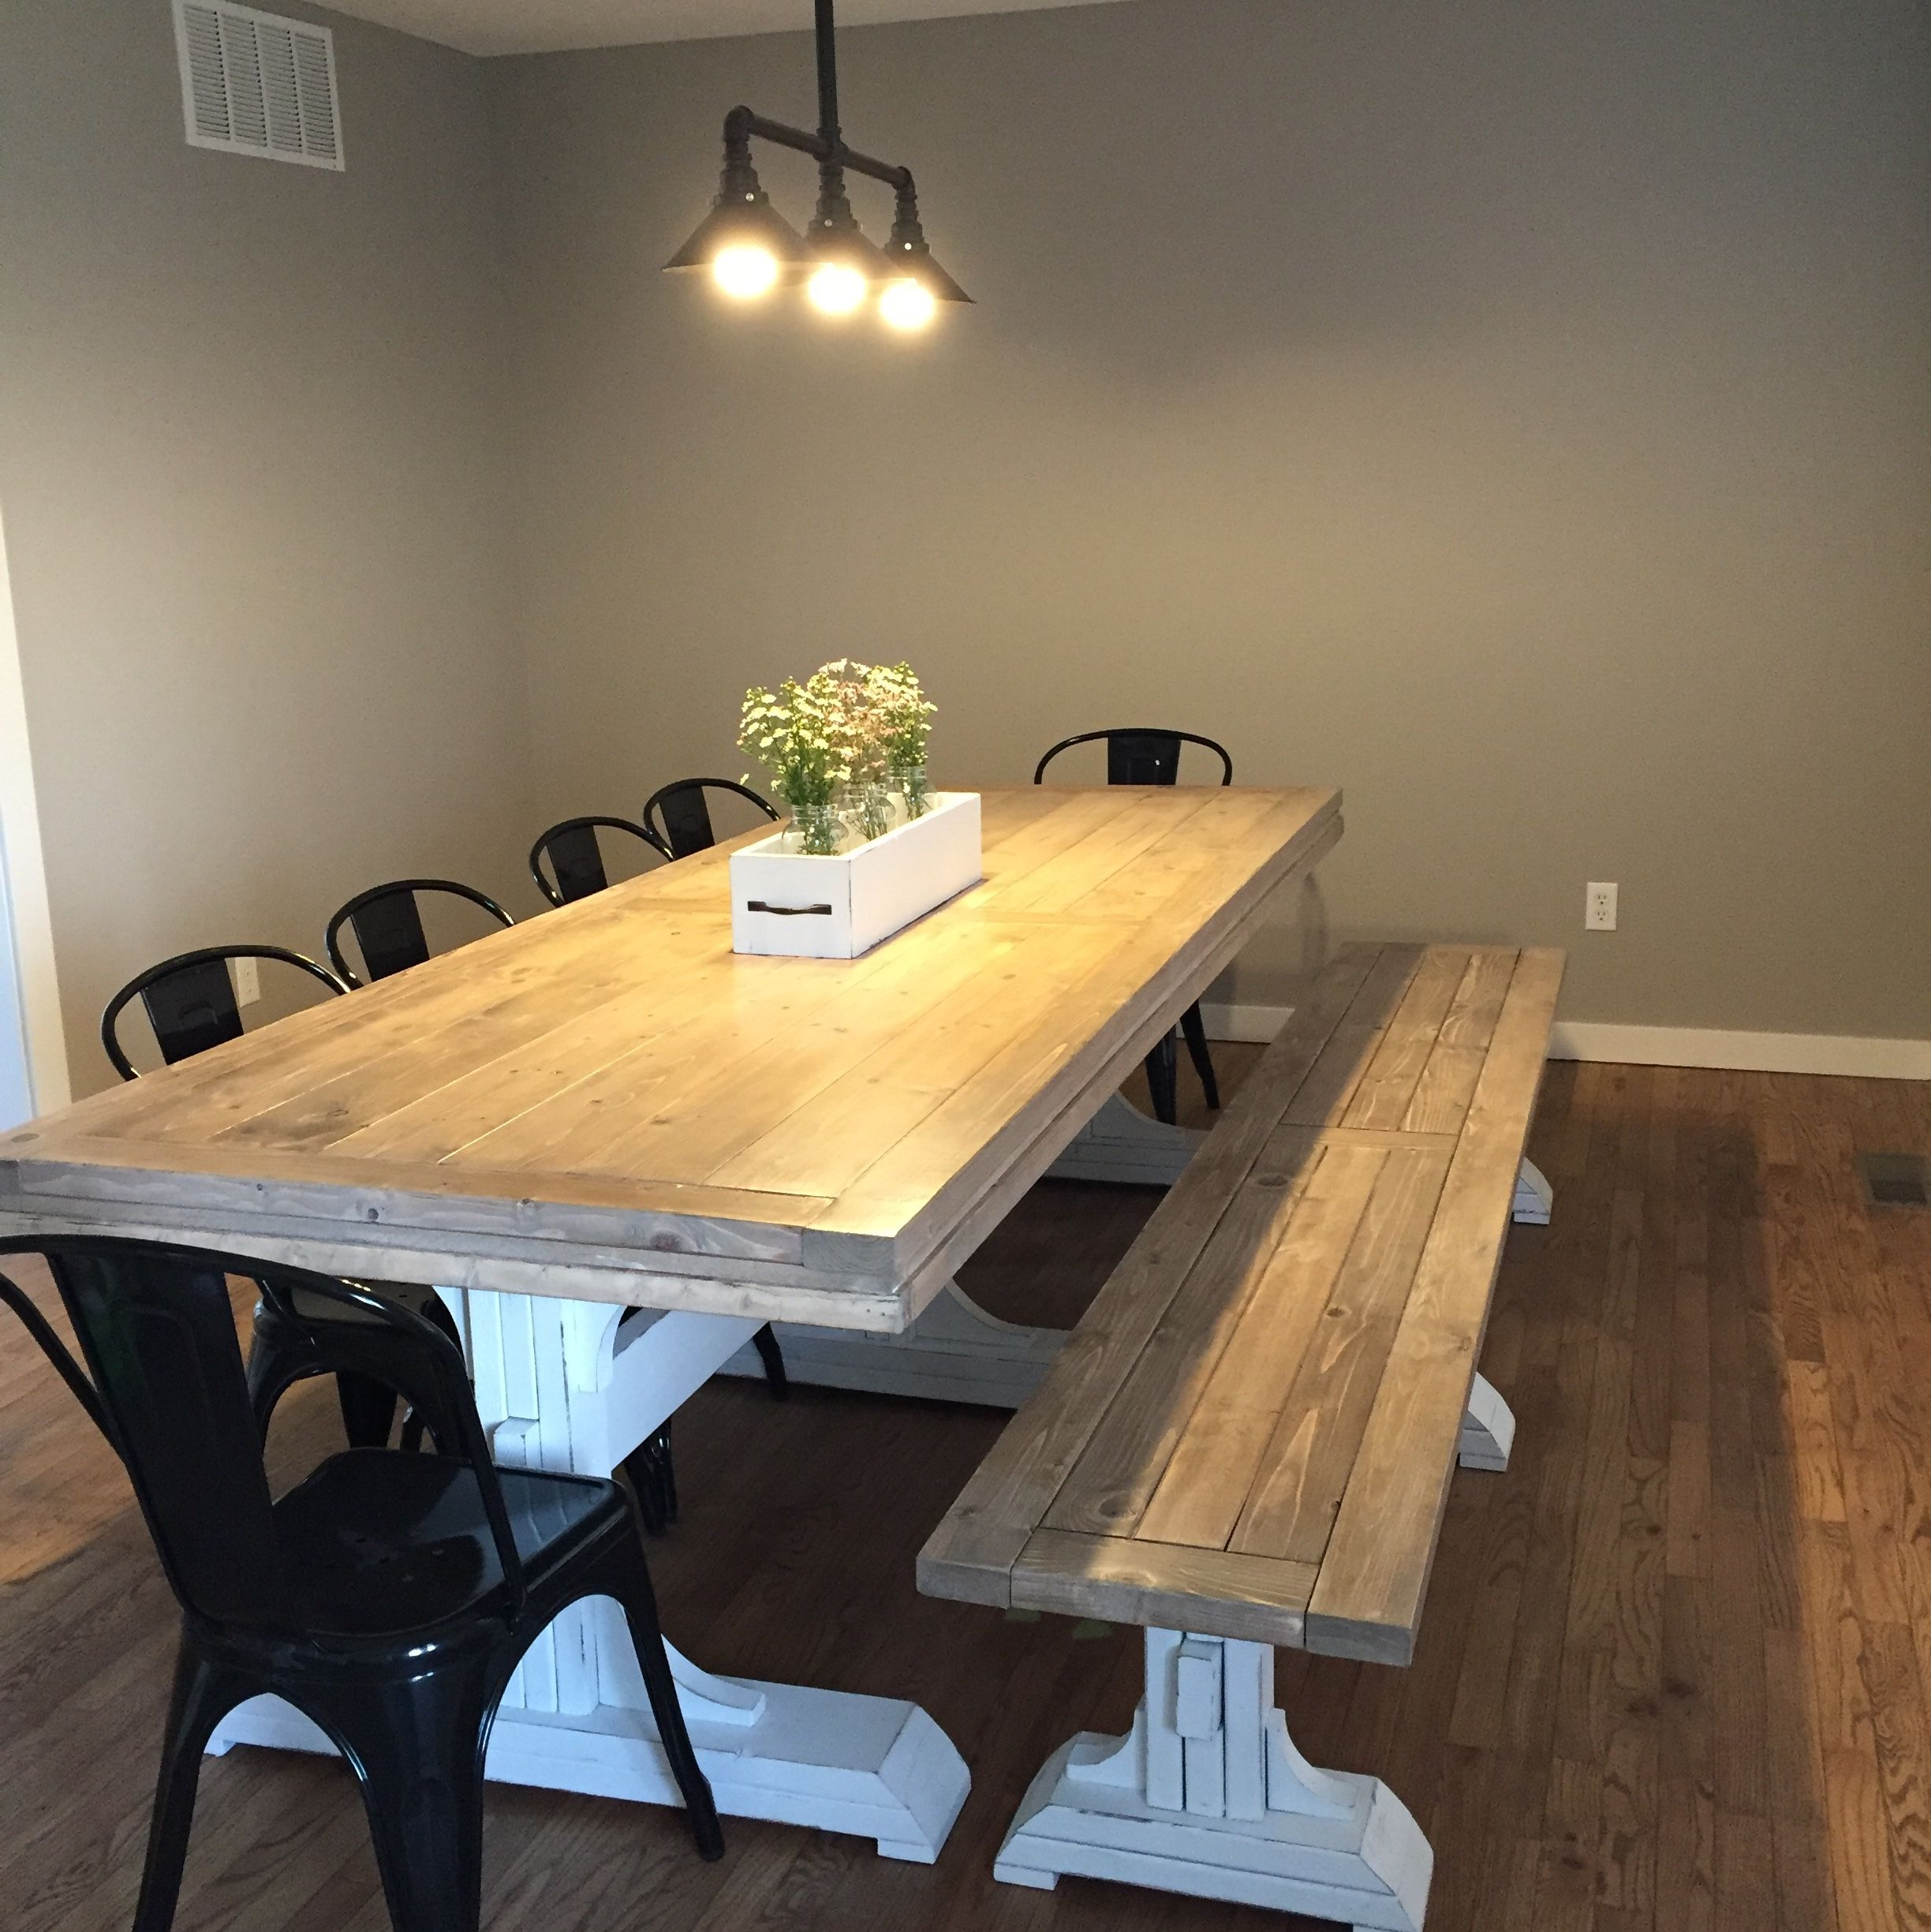 Triple Pedestal farmhouse Table | Do It Yourself Home Projects from ...